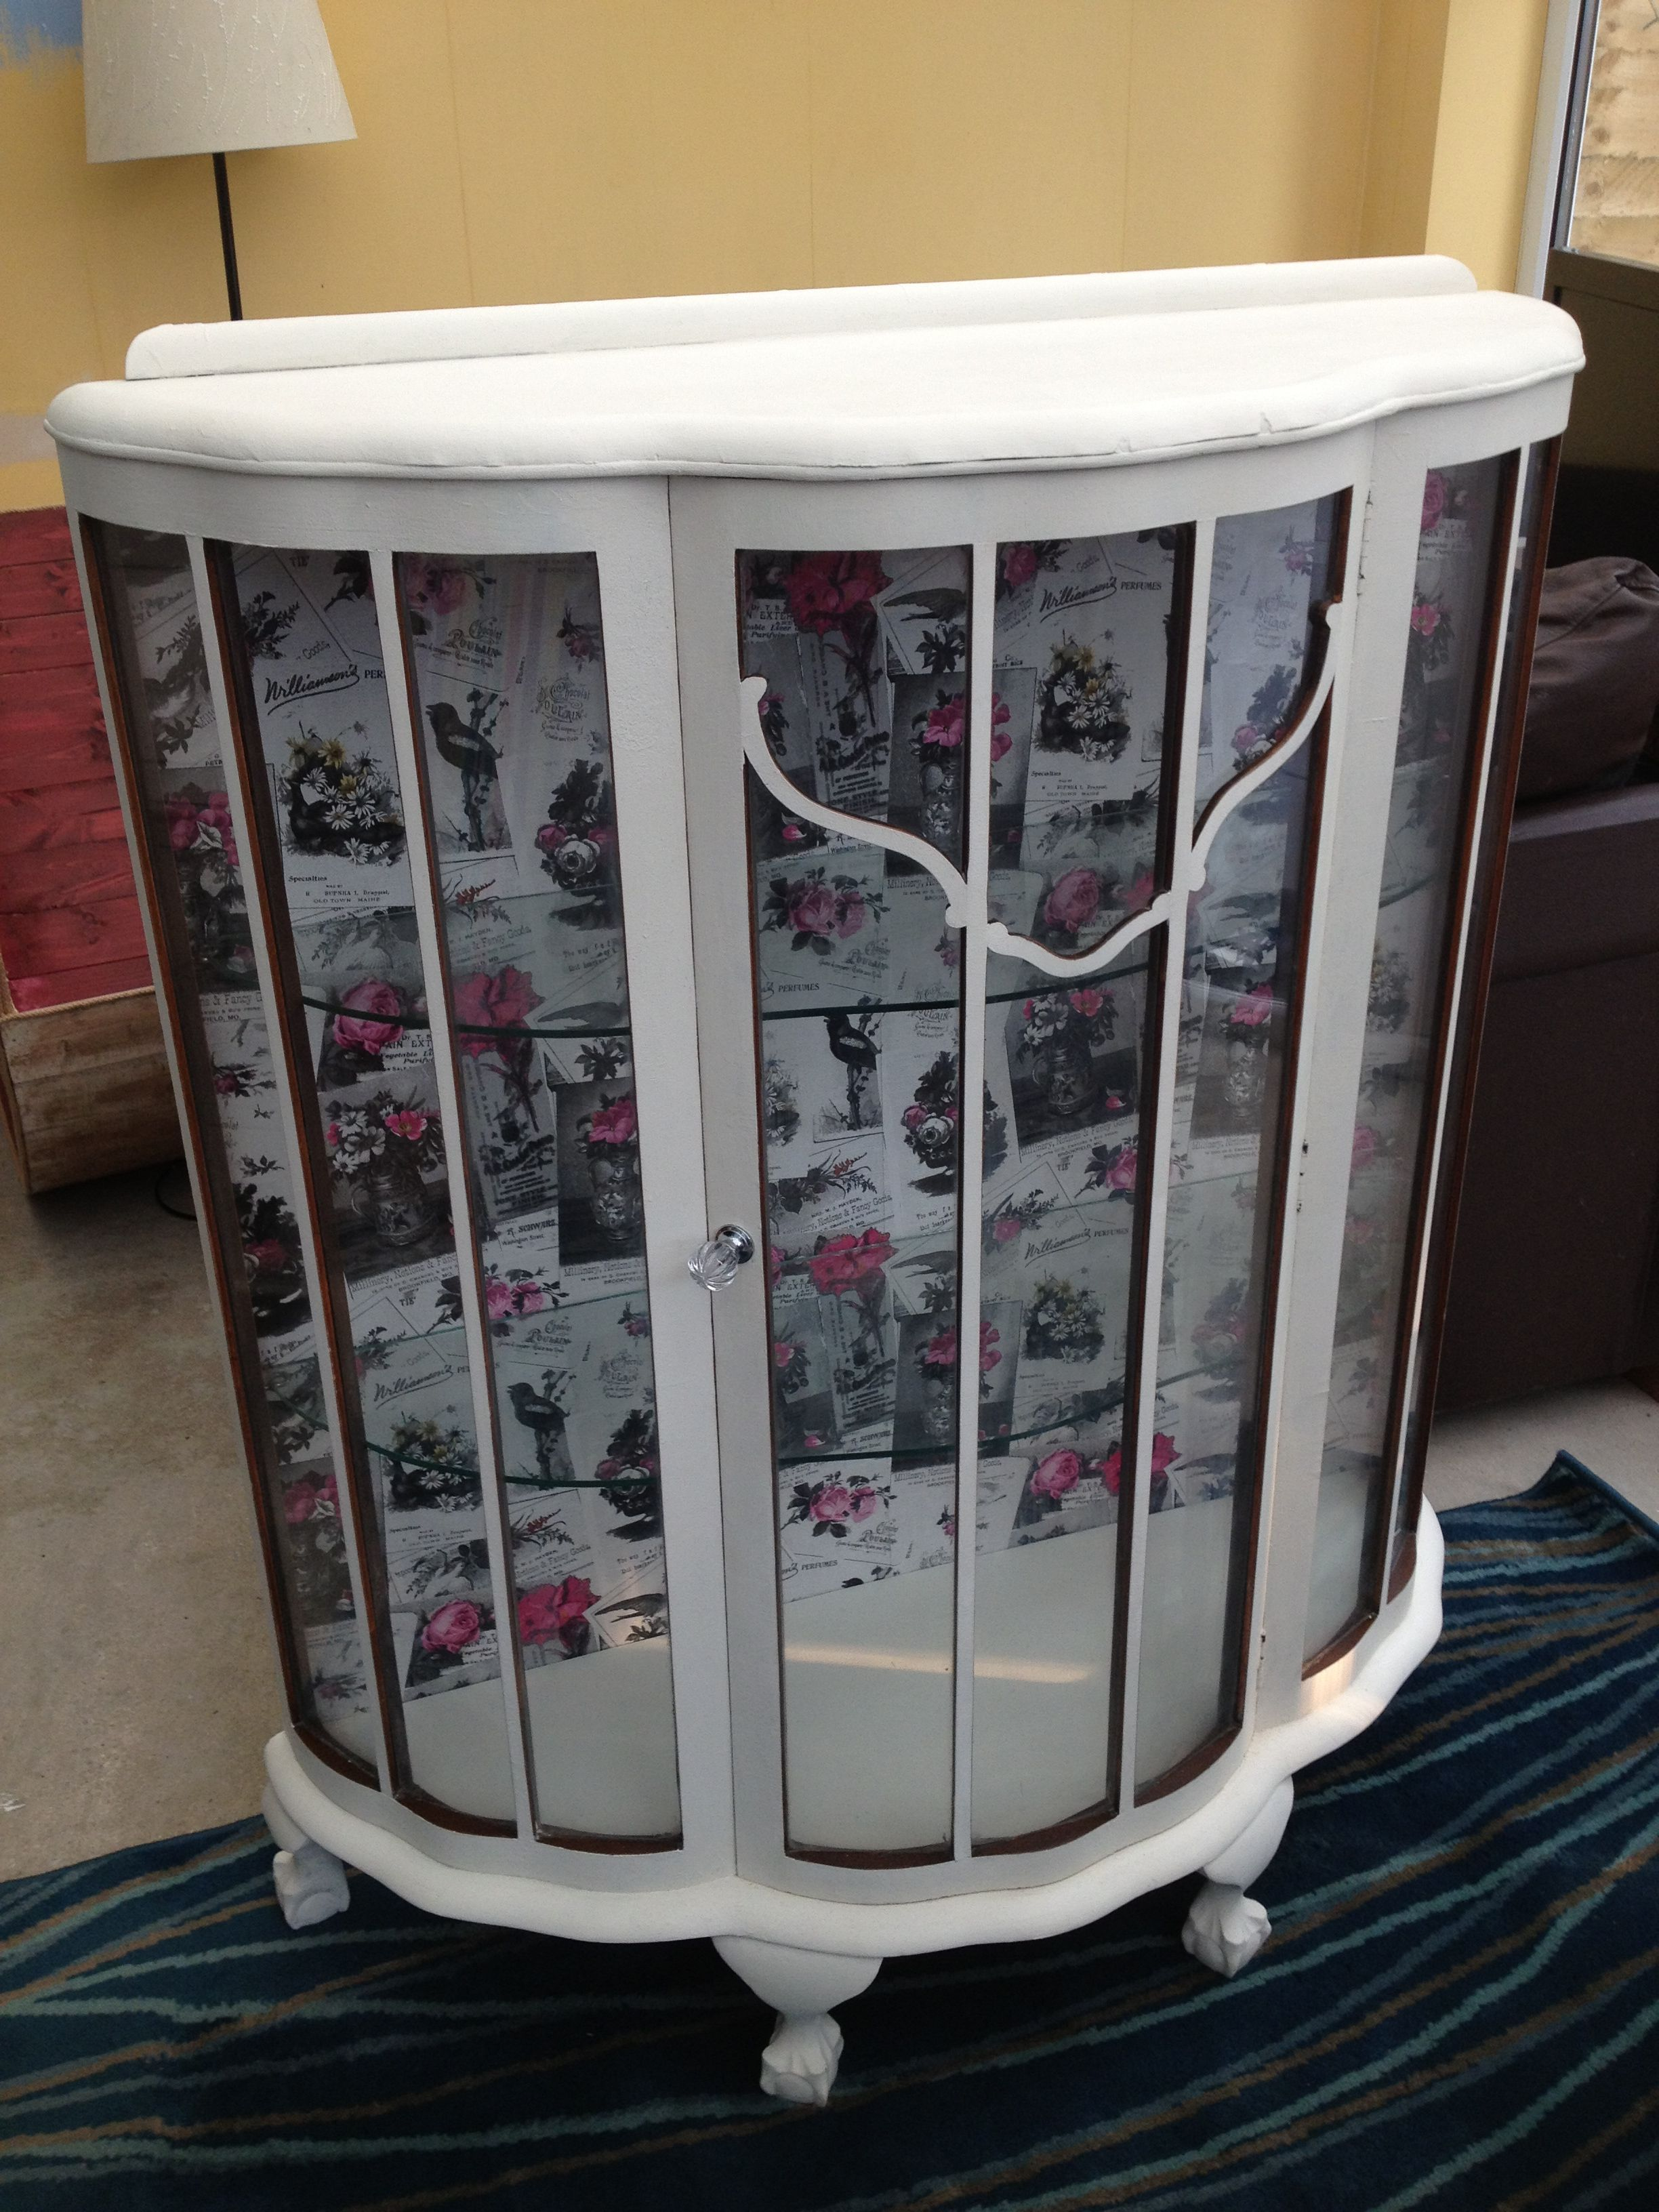 Vintage, retro upcycled glass display cabinet | Glass display ...